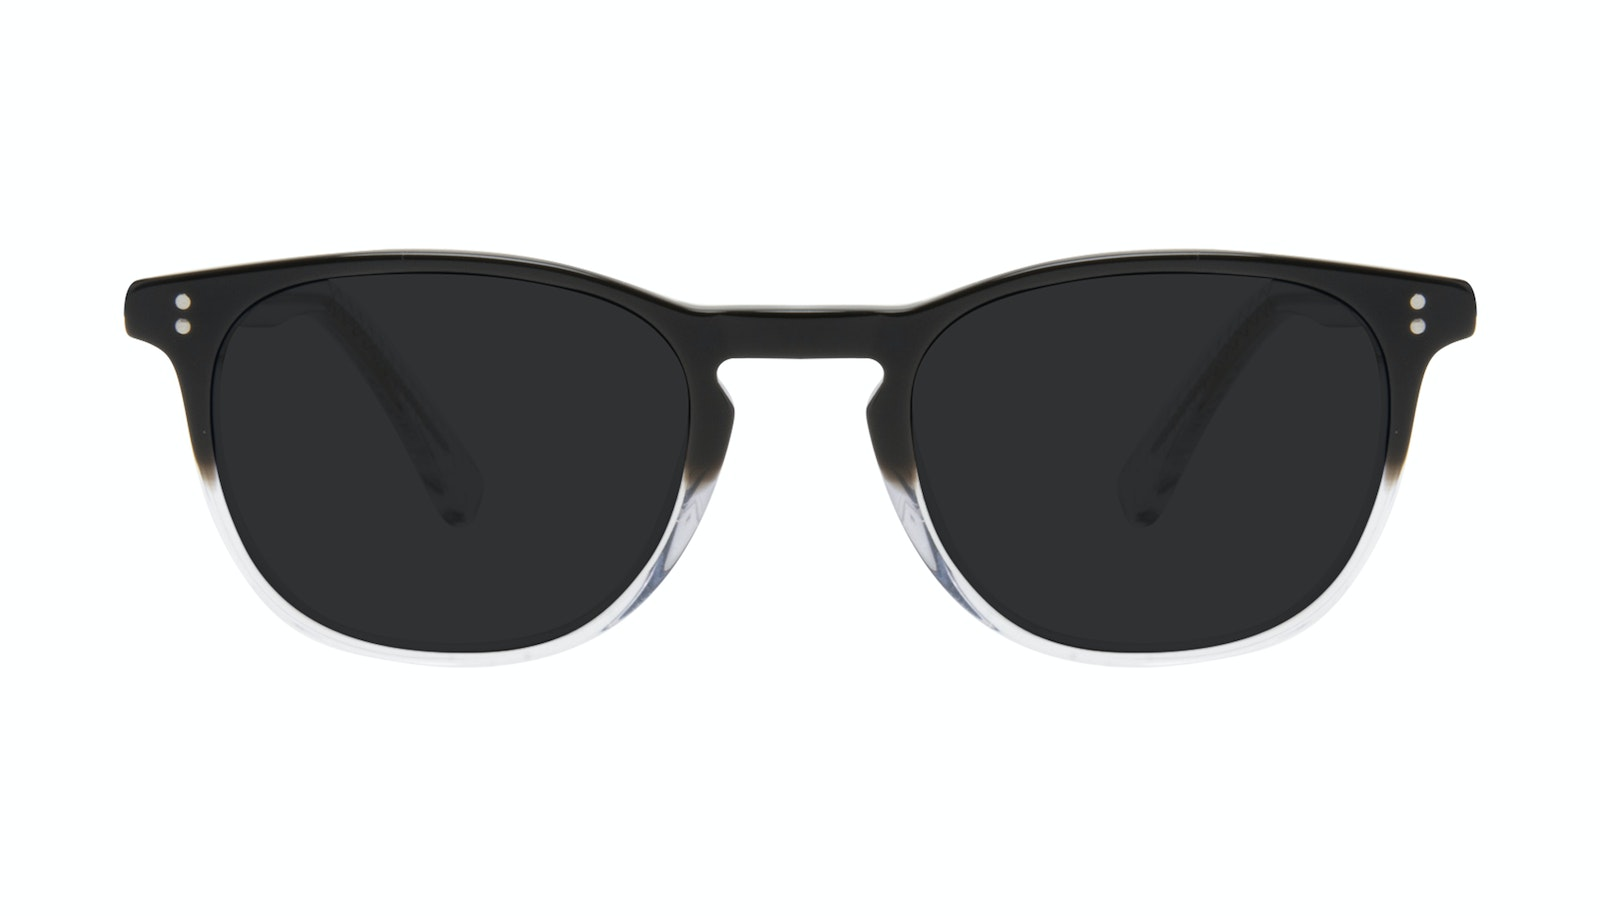 Affordable Fashion Glasses Round Sunglasses Men Trooper Onyx Clear